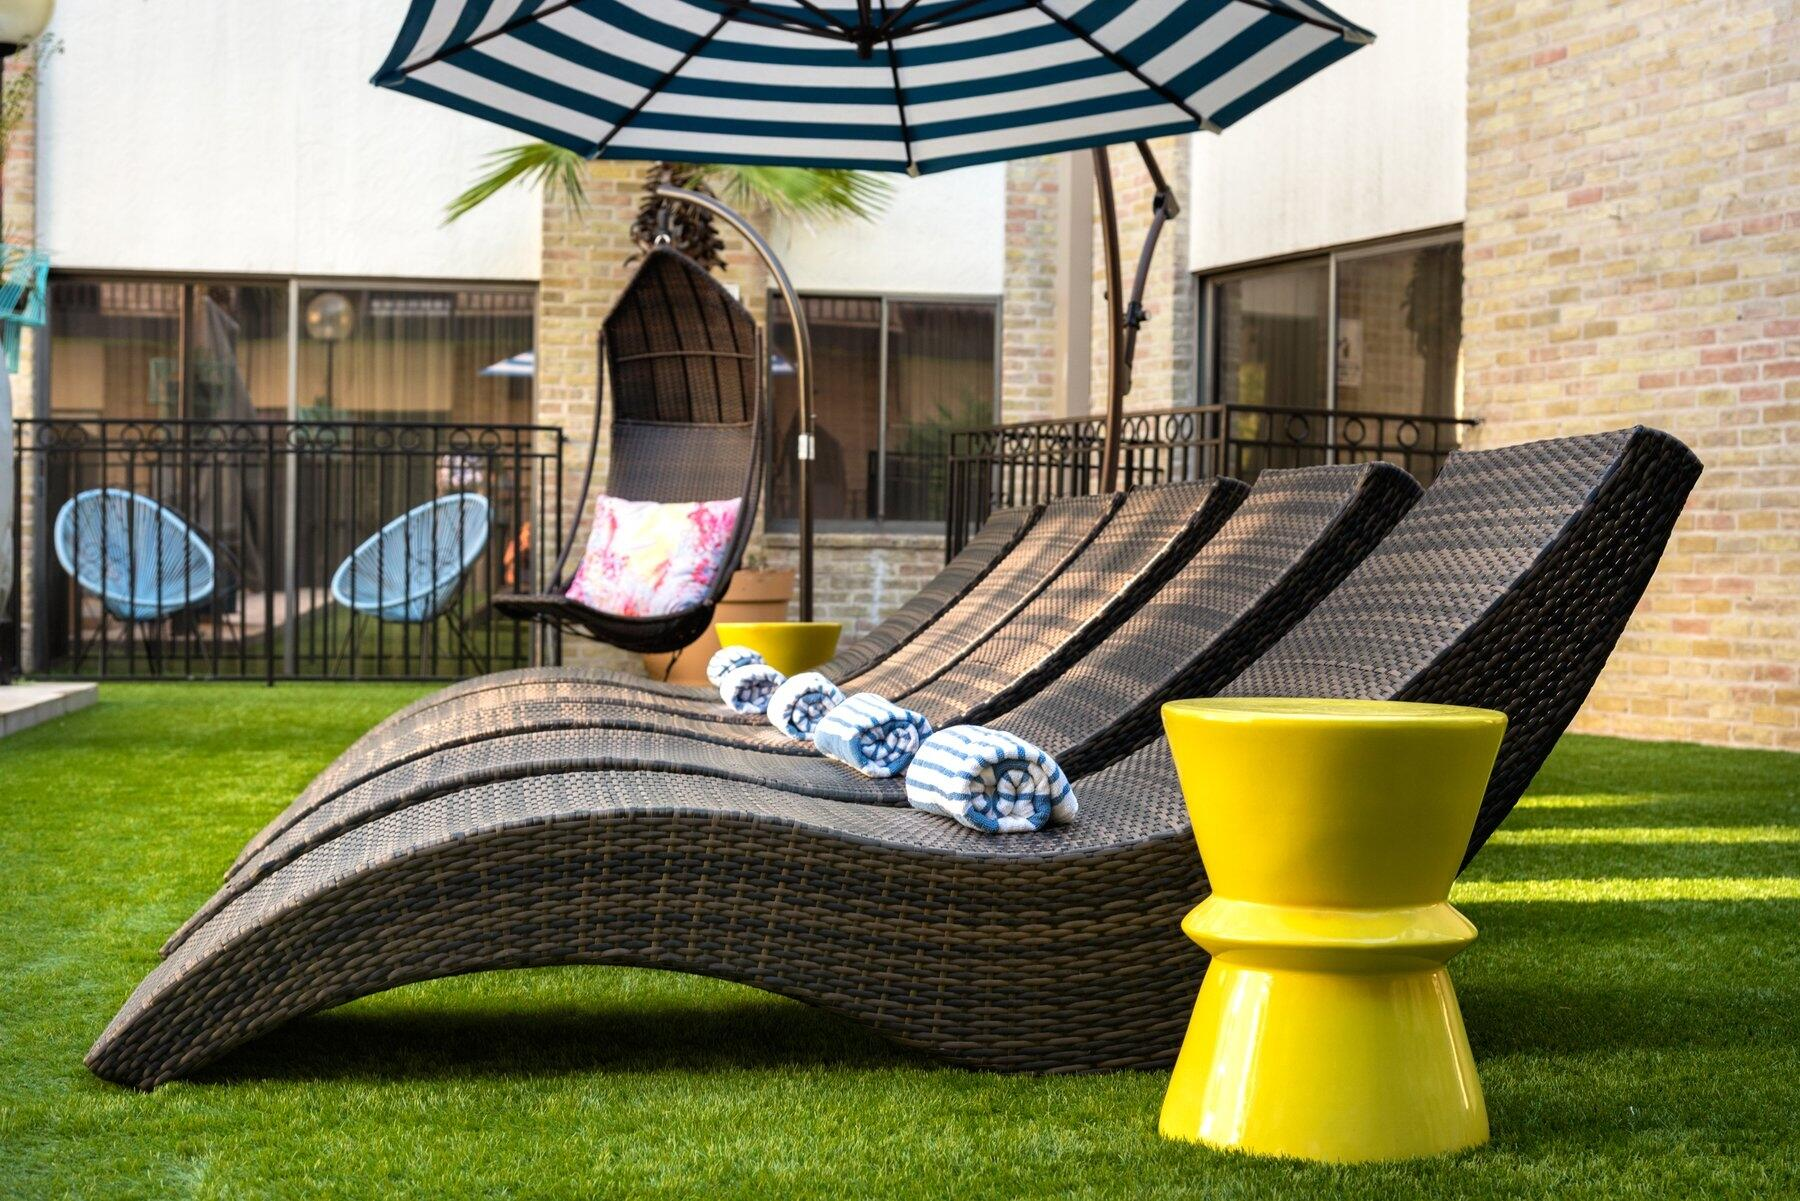 Lounge chairs by pool